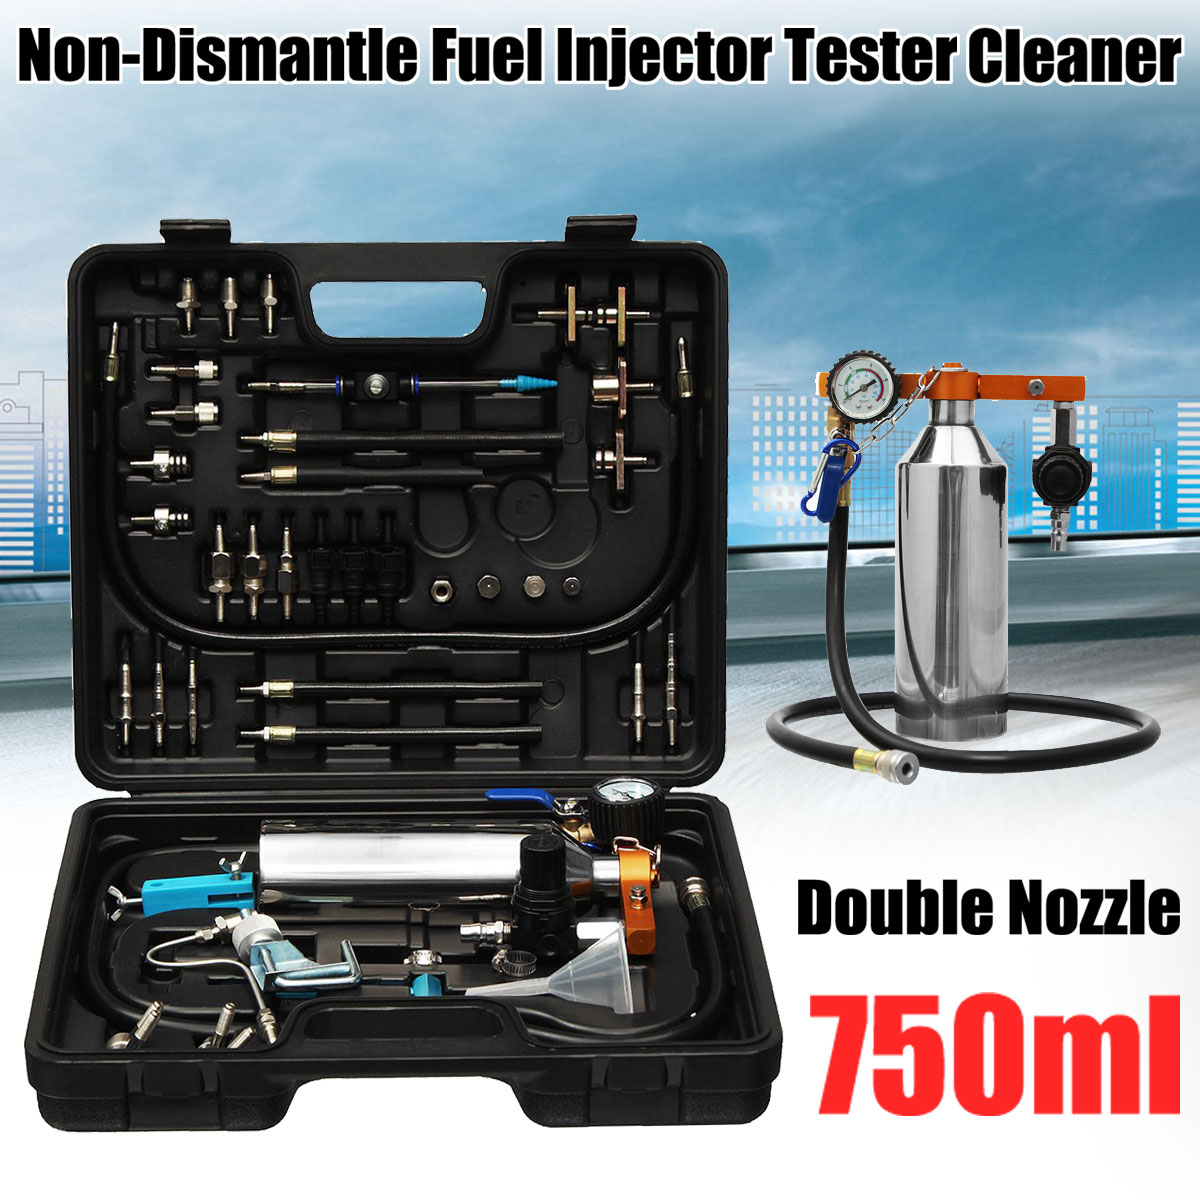 750ml Double Nozzle Non-Dismantle Fuel Cleaner Injector & Test For Petrol EFI Throttle